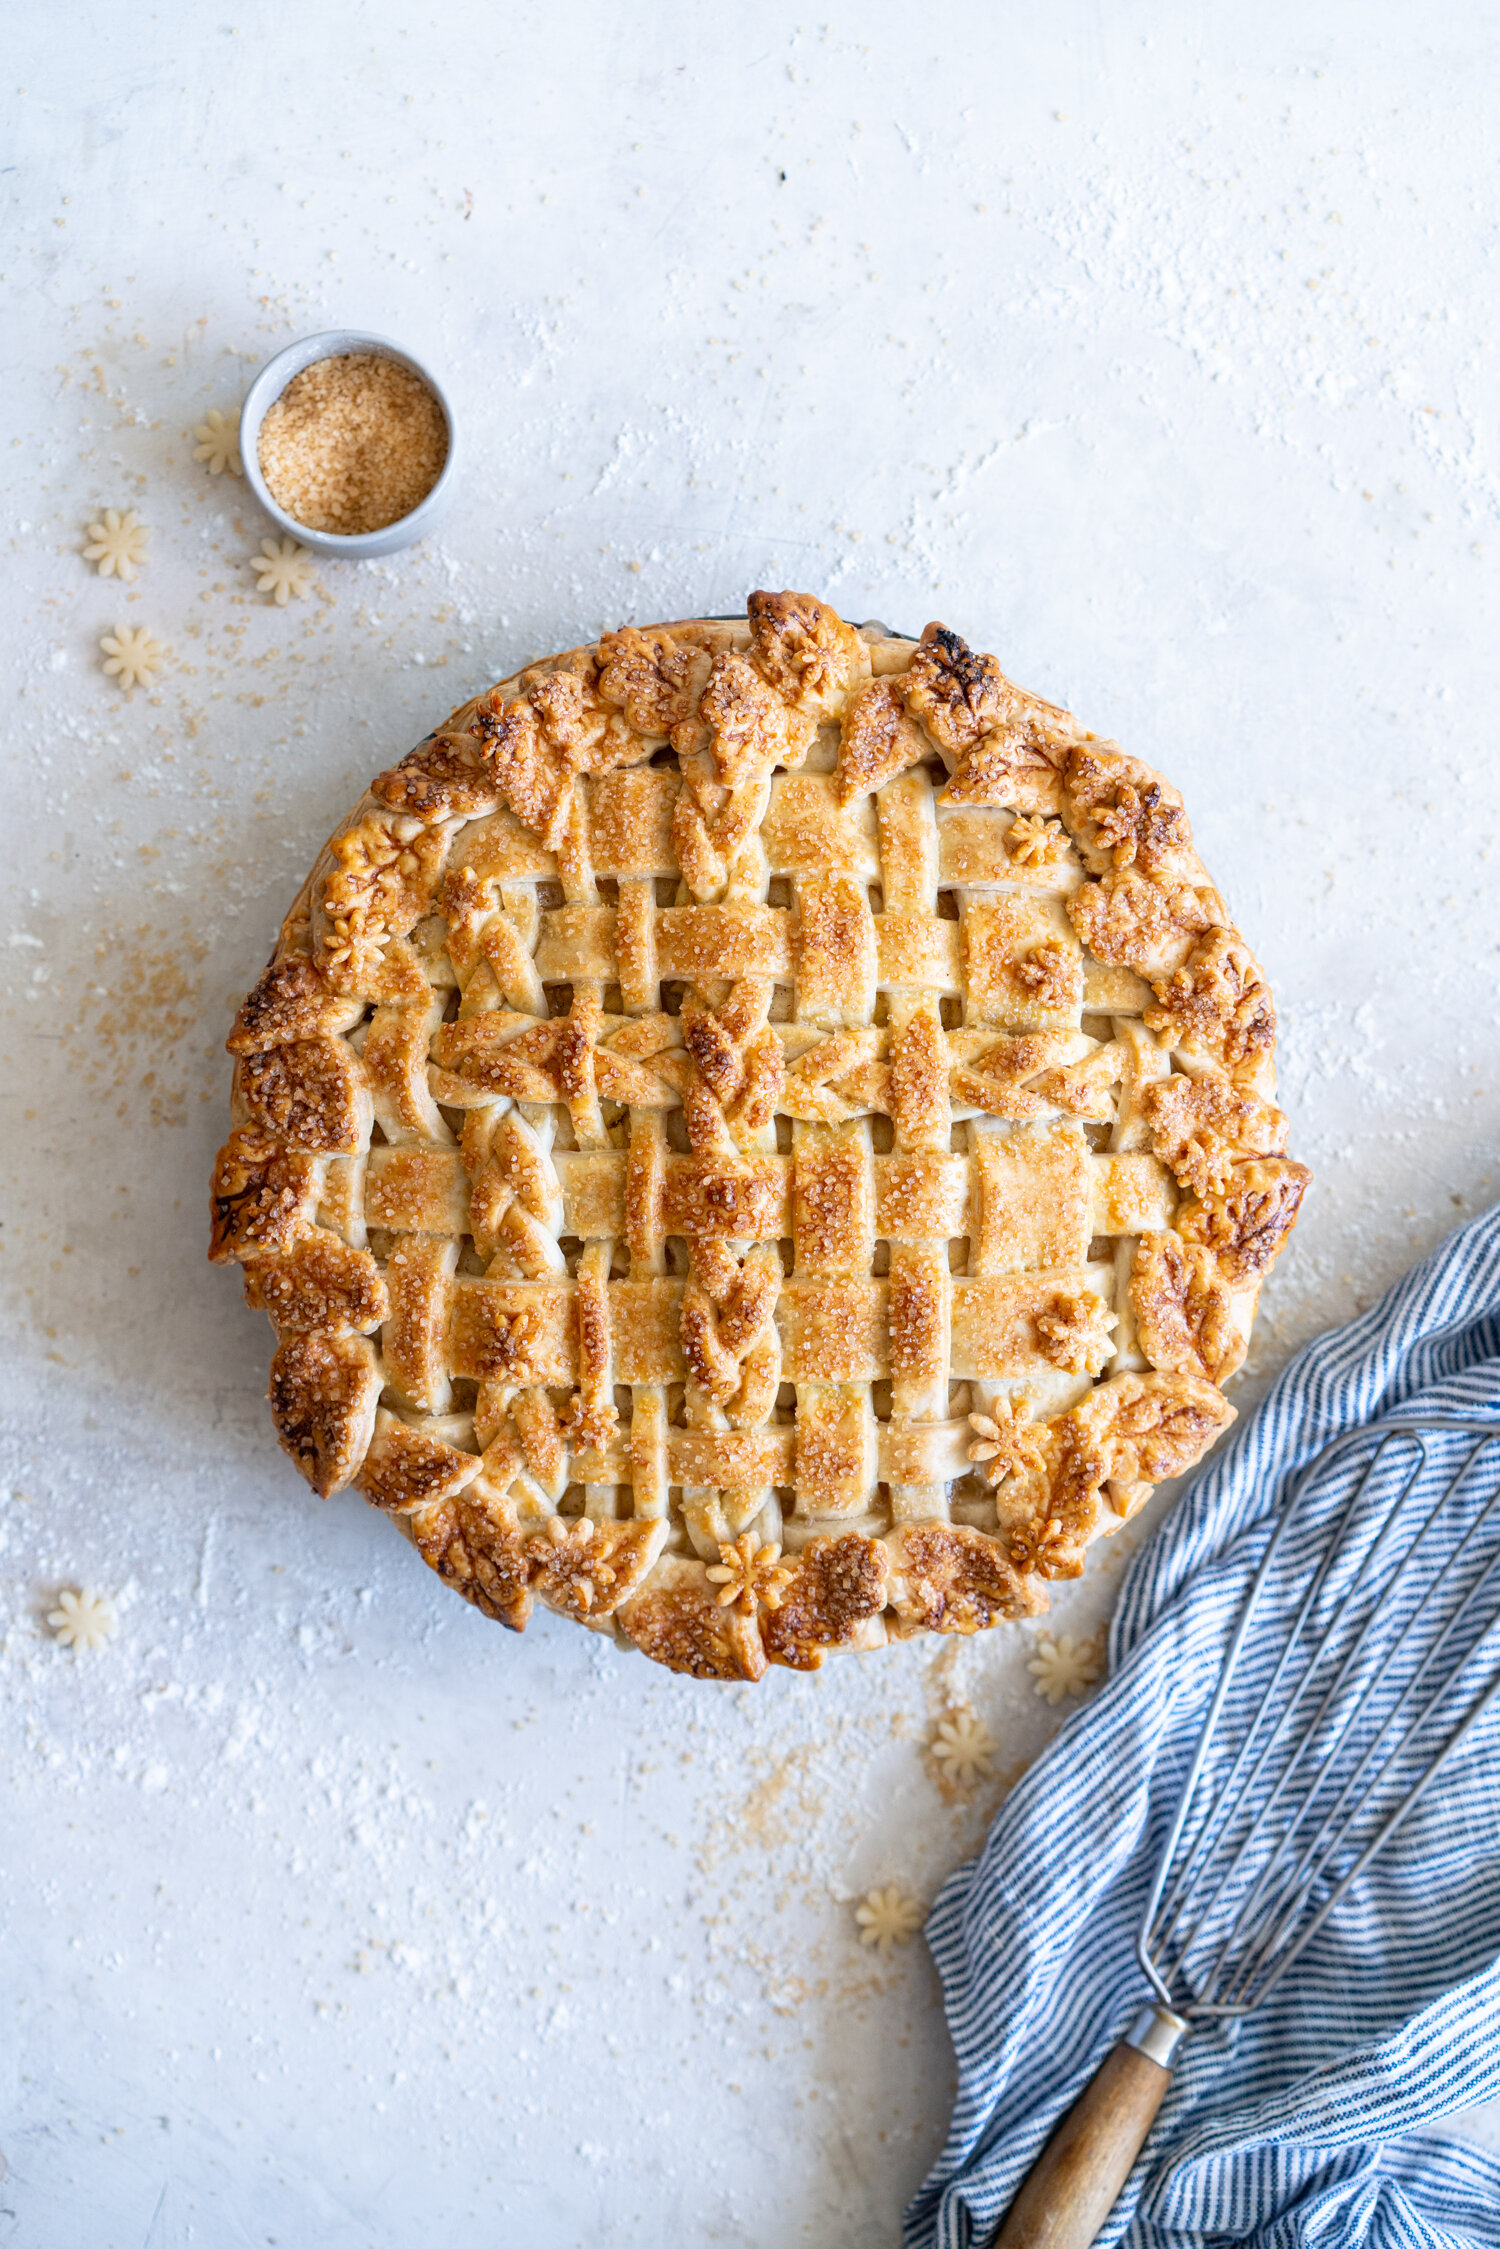 Basic Apple Pie - Sweet and tart apples are finely sliced, tossed with some flour and vanilla bean paste, then nestled inside a super easy pie crust and topped with a lattice and baked to perfection. This is the perfect fall pie, with a pie crust that is very quick and very easy to make - it is basically foolproof. #applepie #easyapplepie